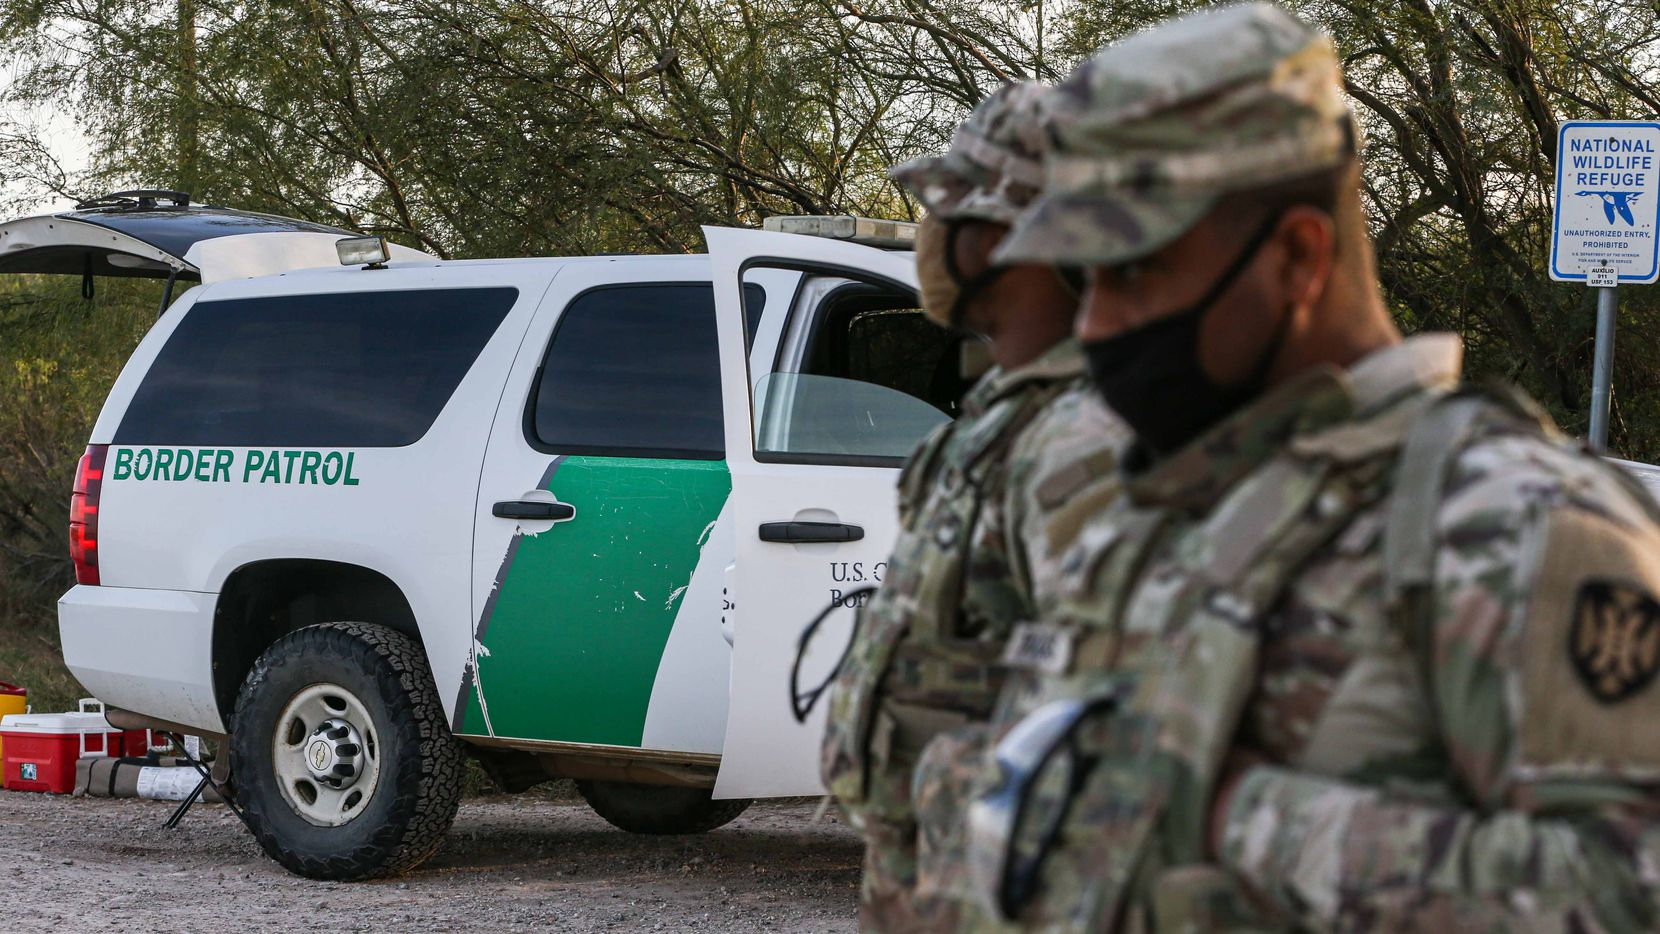 Army guardsmen that provide support to the border patrol, stand vigilant near the Texas border with Mexico in Hidalgo on January 13, 2021.